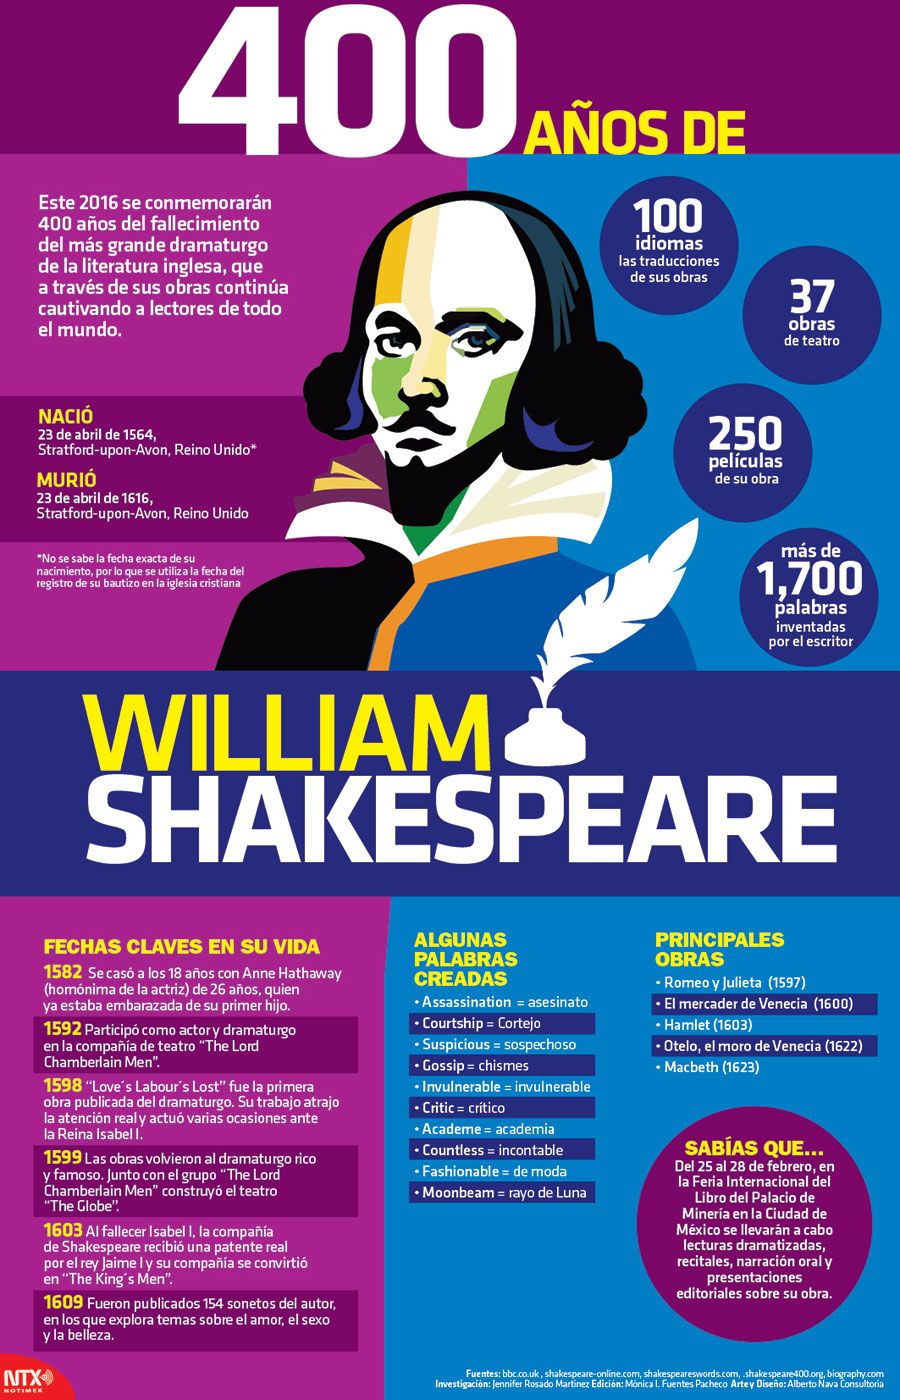 william shakespere essay Begin with an interesting quotation related to your opinion about shakespeare mystery (you will need a transition here) – end the intro paragraph with your thesis statement: even though that.